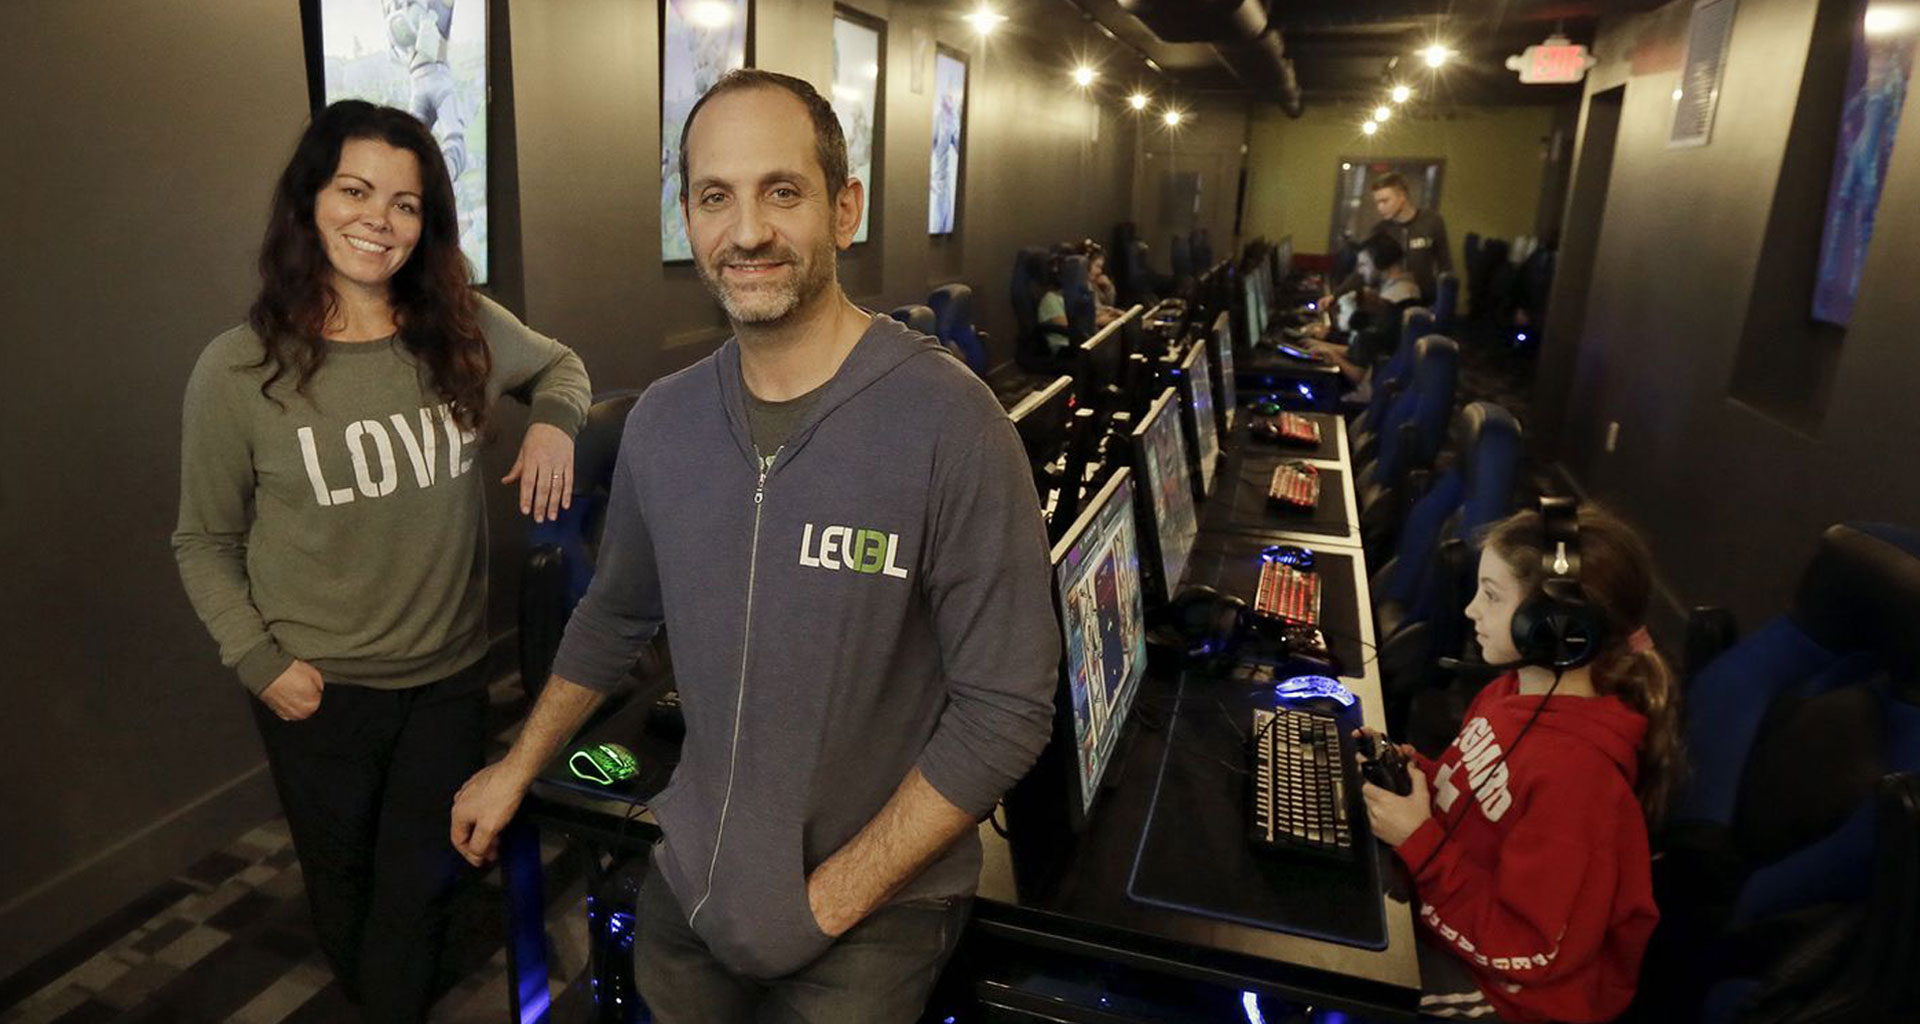 Family Owned West Chester Video Gaming Center - Video Games